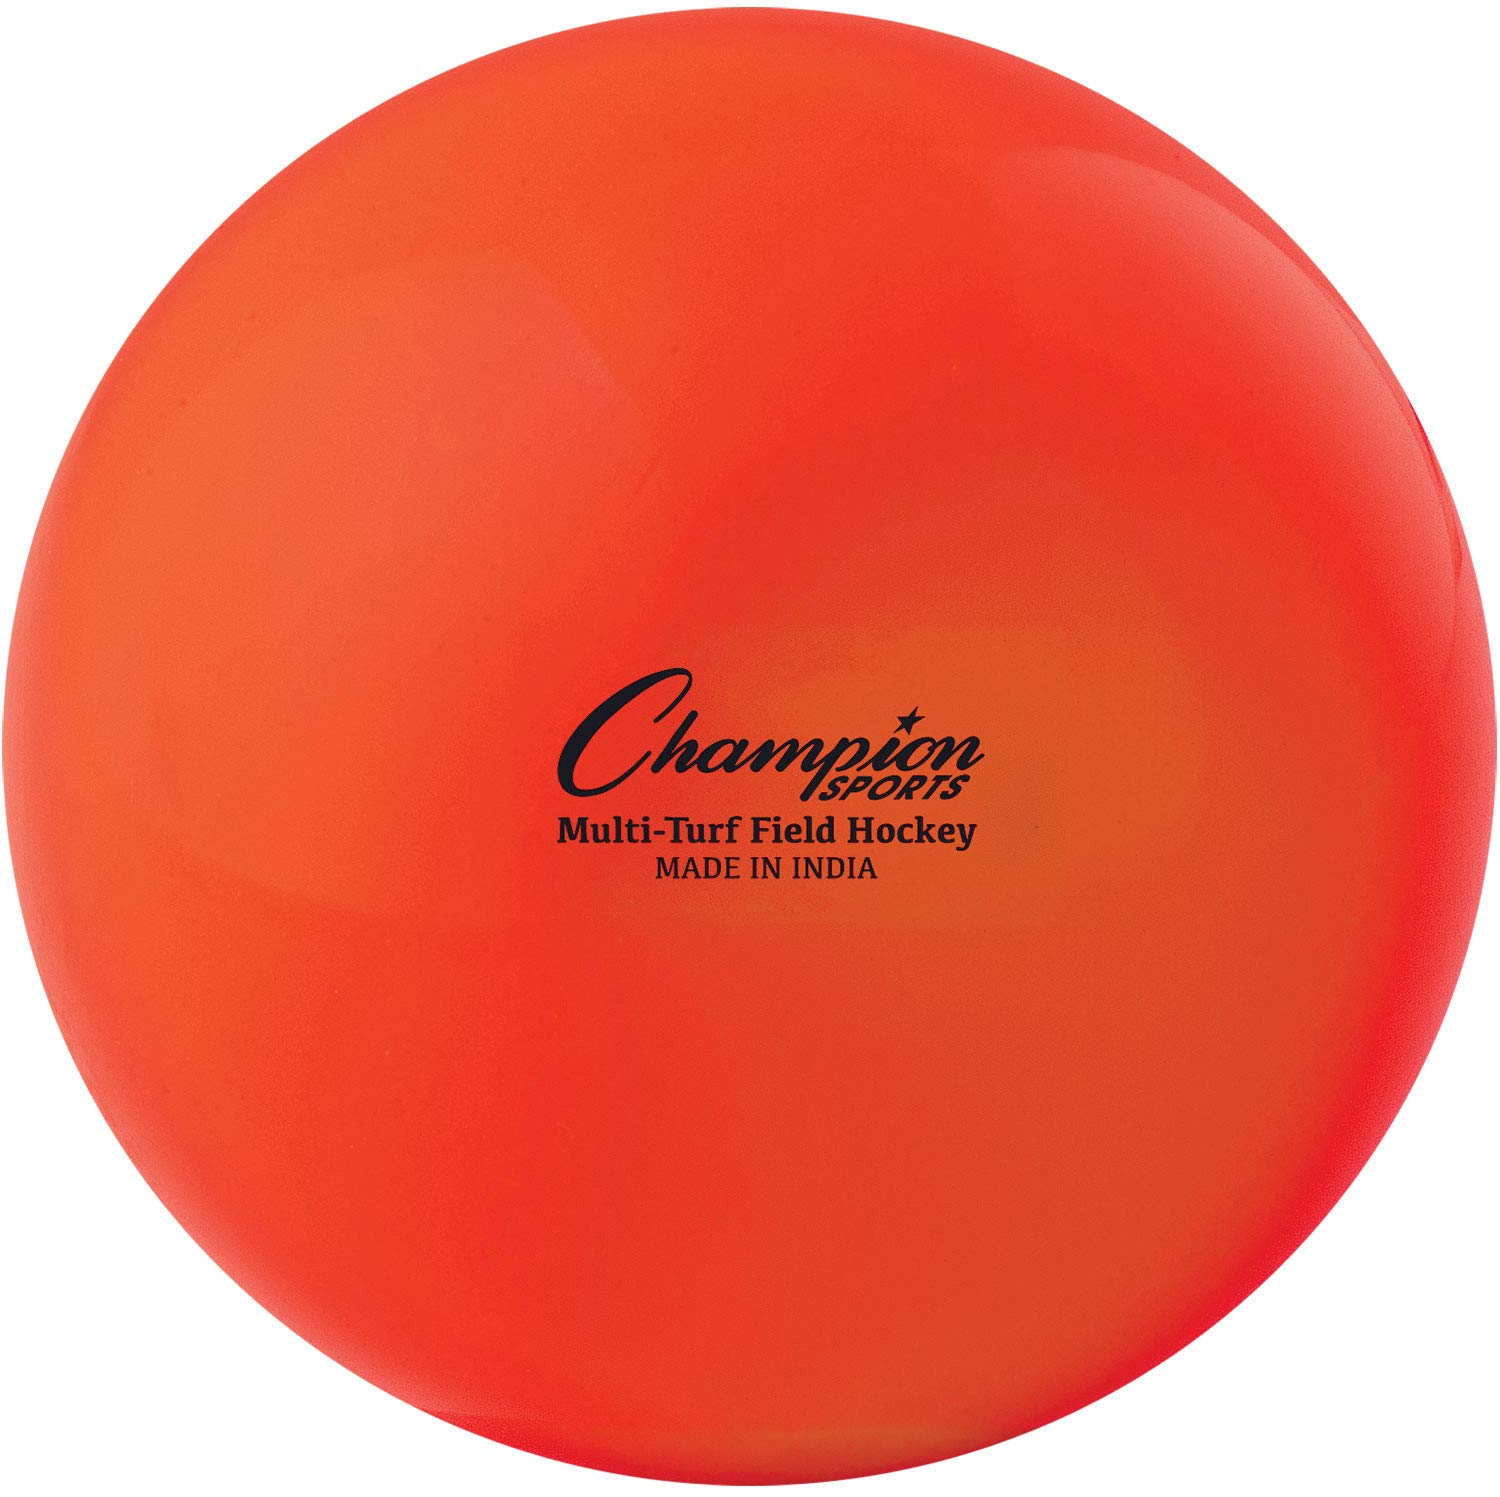 "Champion Sports Field Hockey Balls, Regulation Size, 12-Pack, 2.75"" Each - Sports Practice Hockey Ball Set for Fields, Grass, Turf - Durable, Bouncy, Lightweight, Bright Colored - Orange"